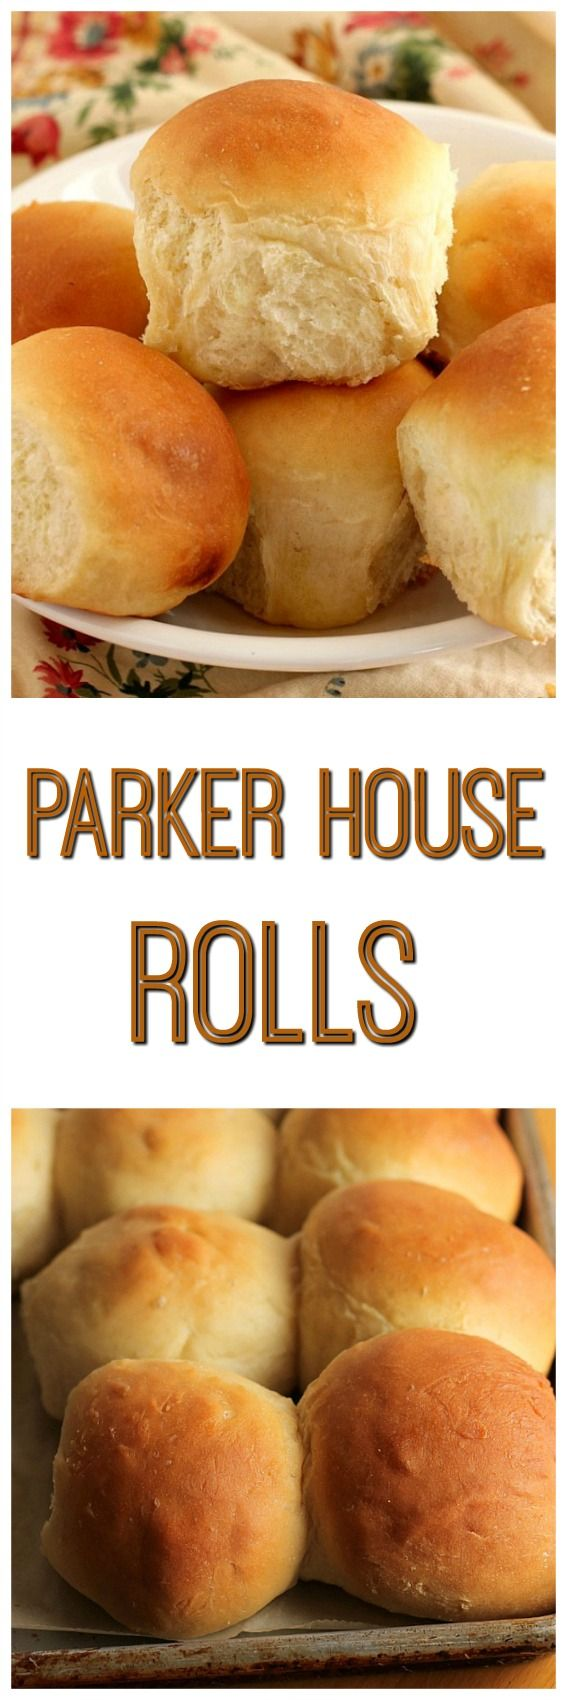 Parker House Rolls -  The recipe made 24 delicious rolls for me.  Enough to eat now and still have some to freeze for later. Homemade rolls in the freezer whenever I want them, I love that.